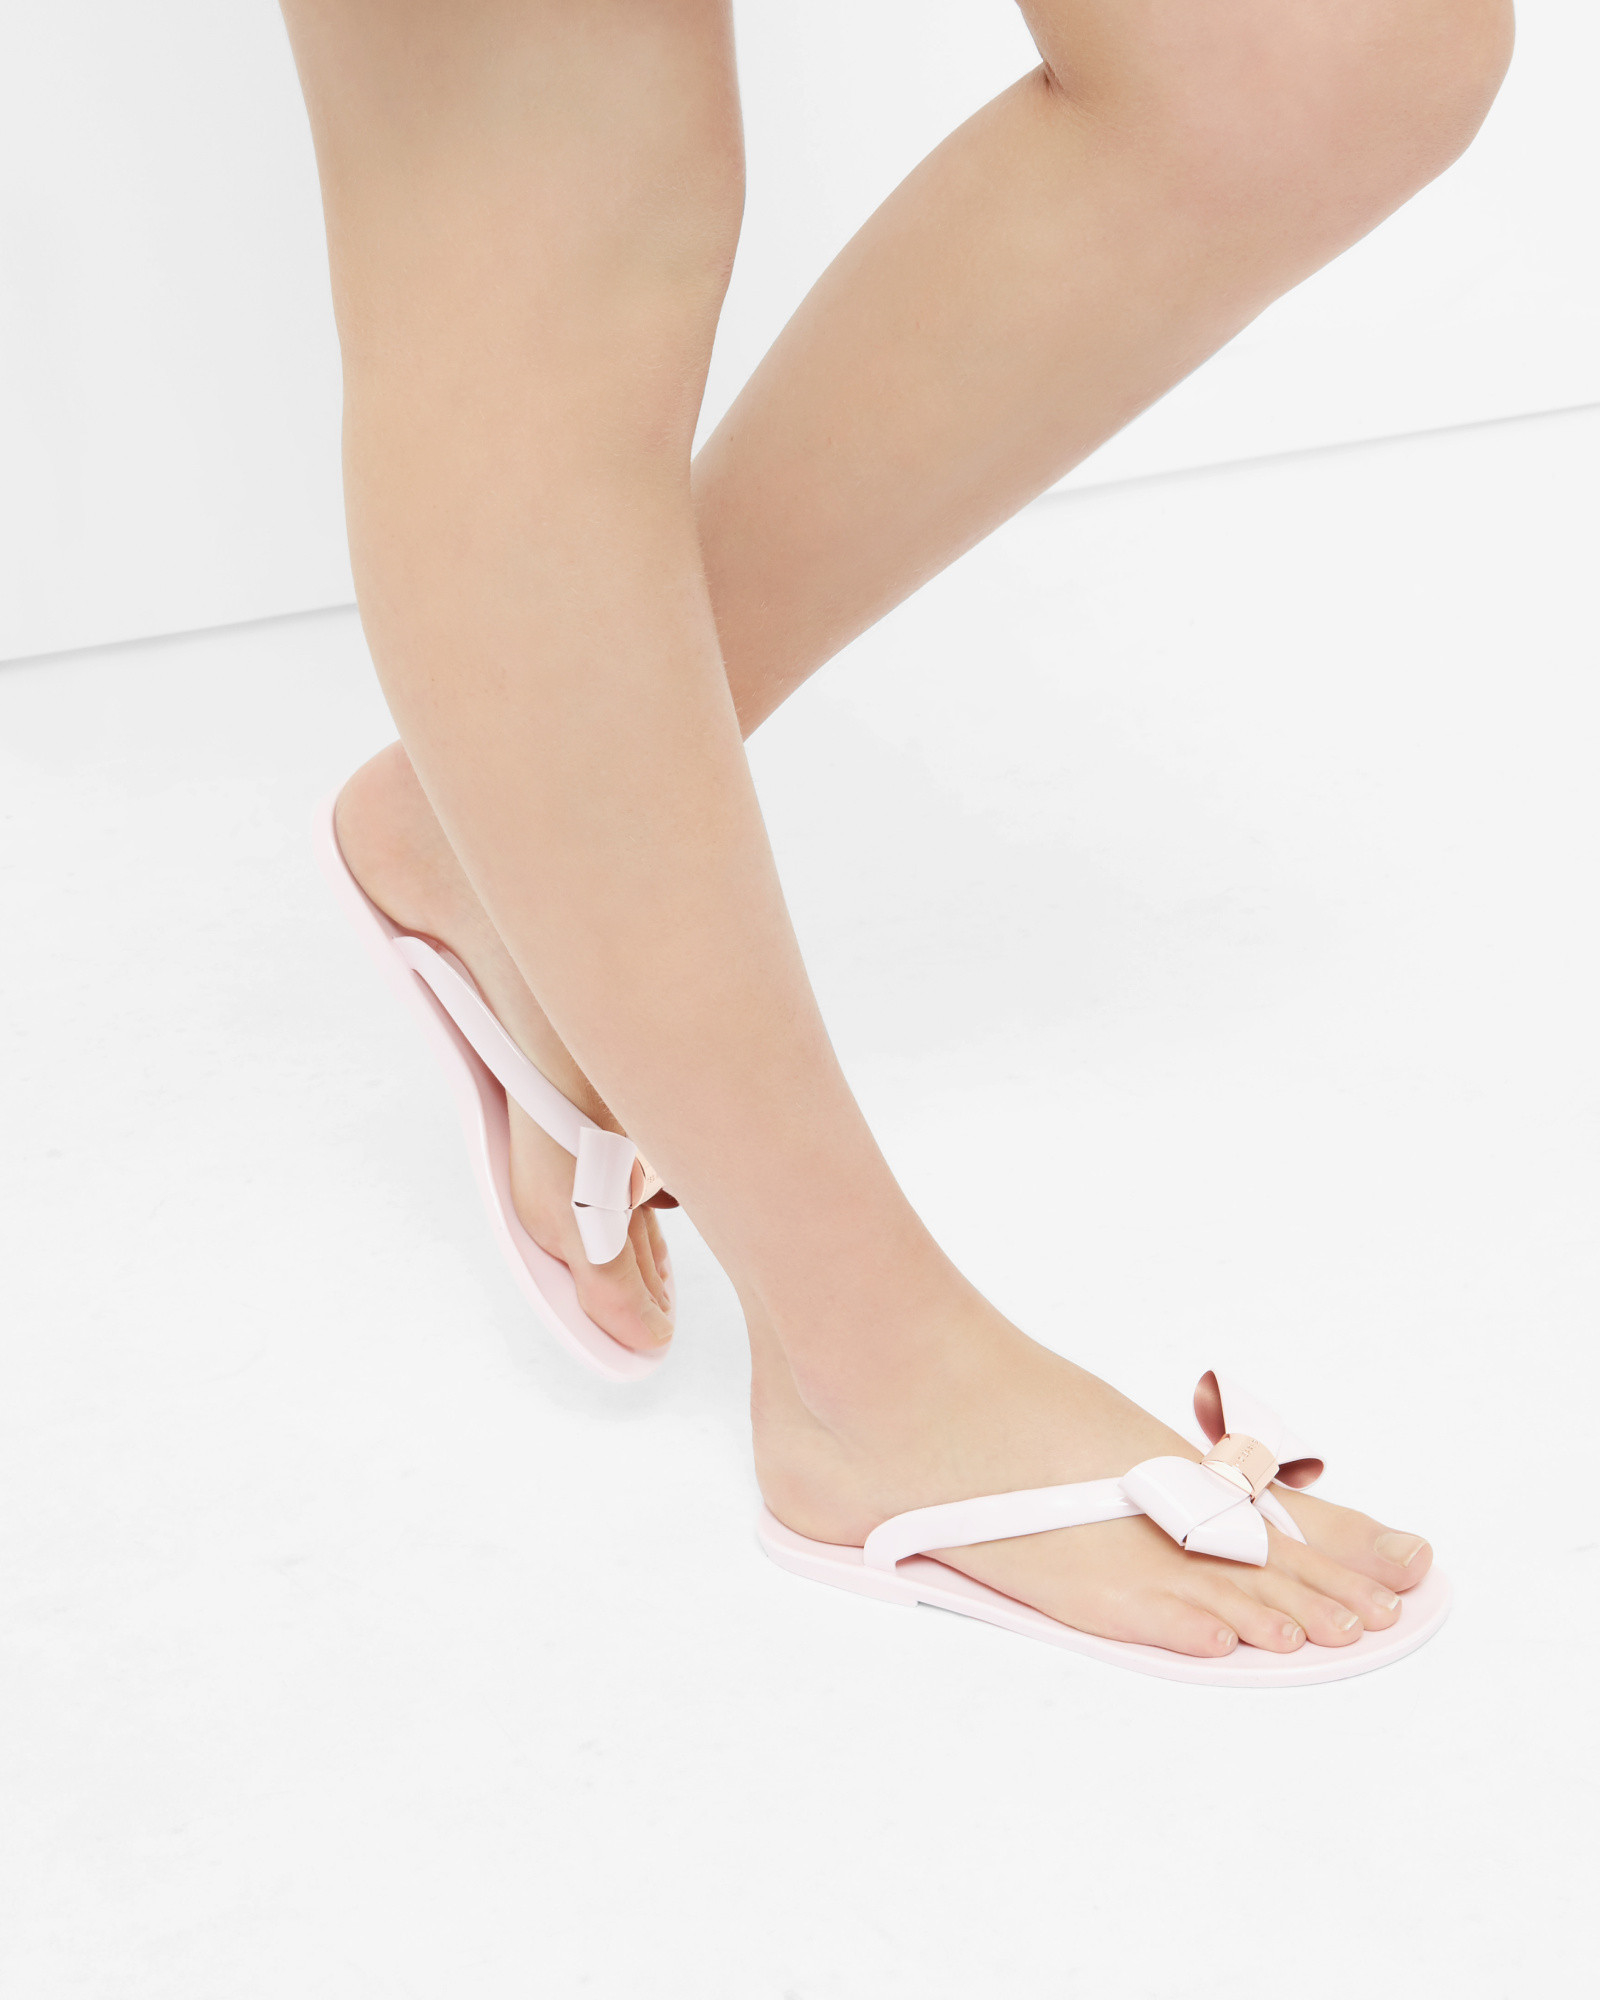 b868233f1b040 Lyst - Ted Baker Bow Flip Flops in Pink